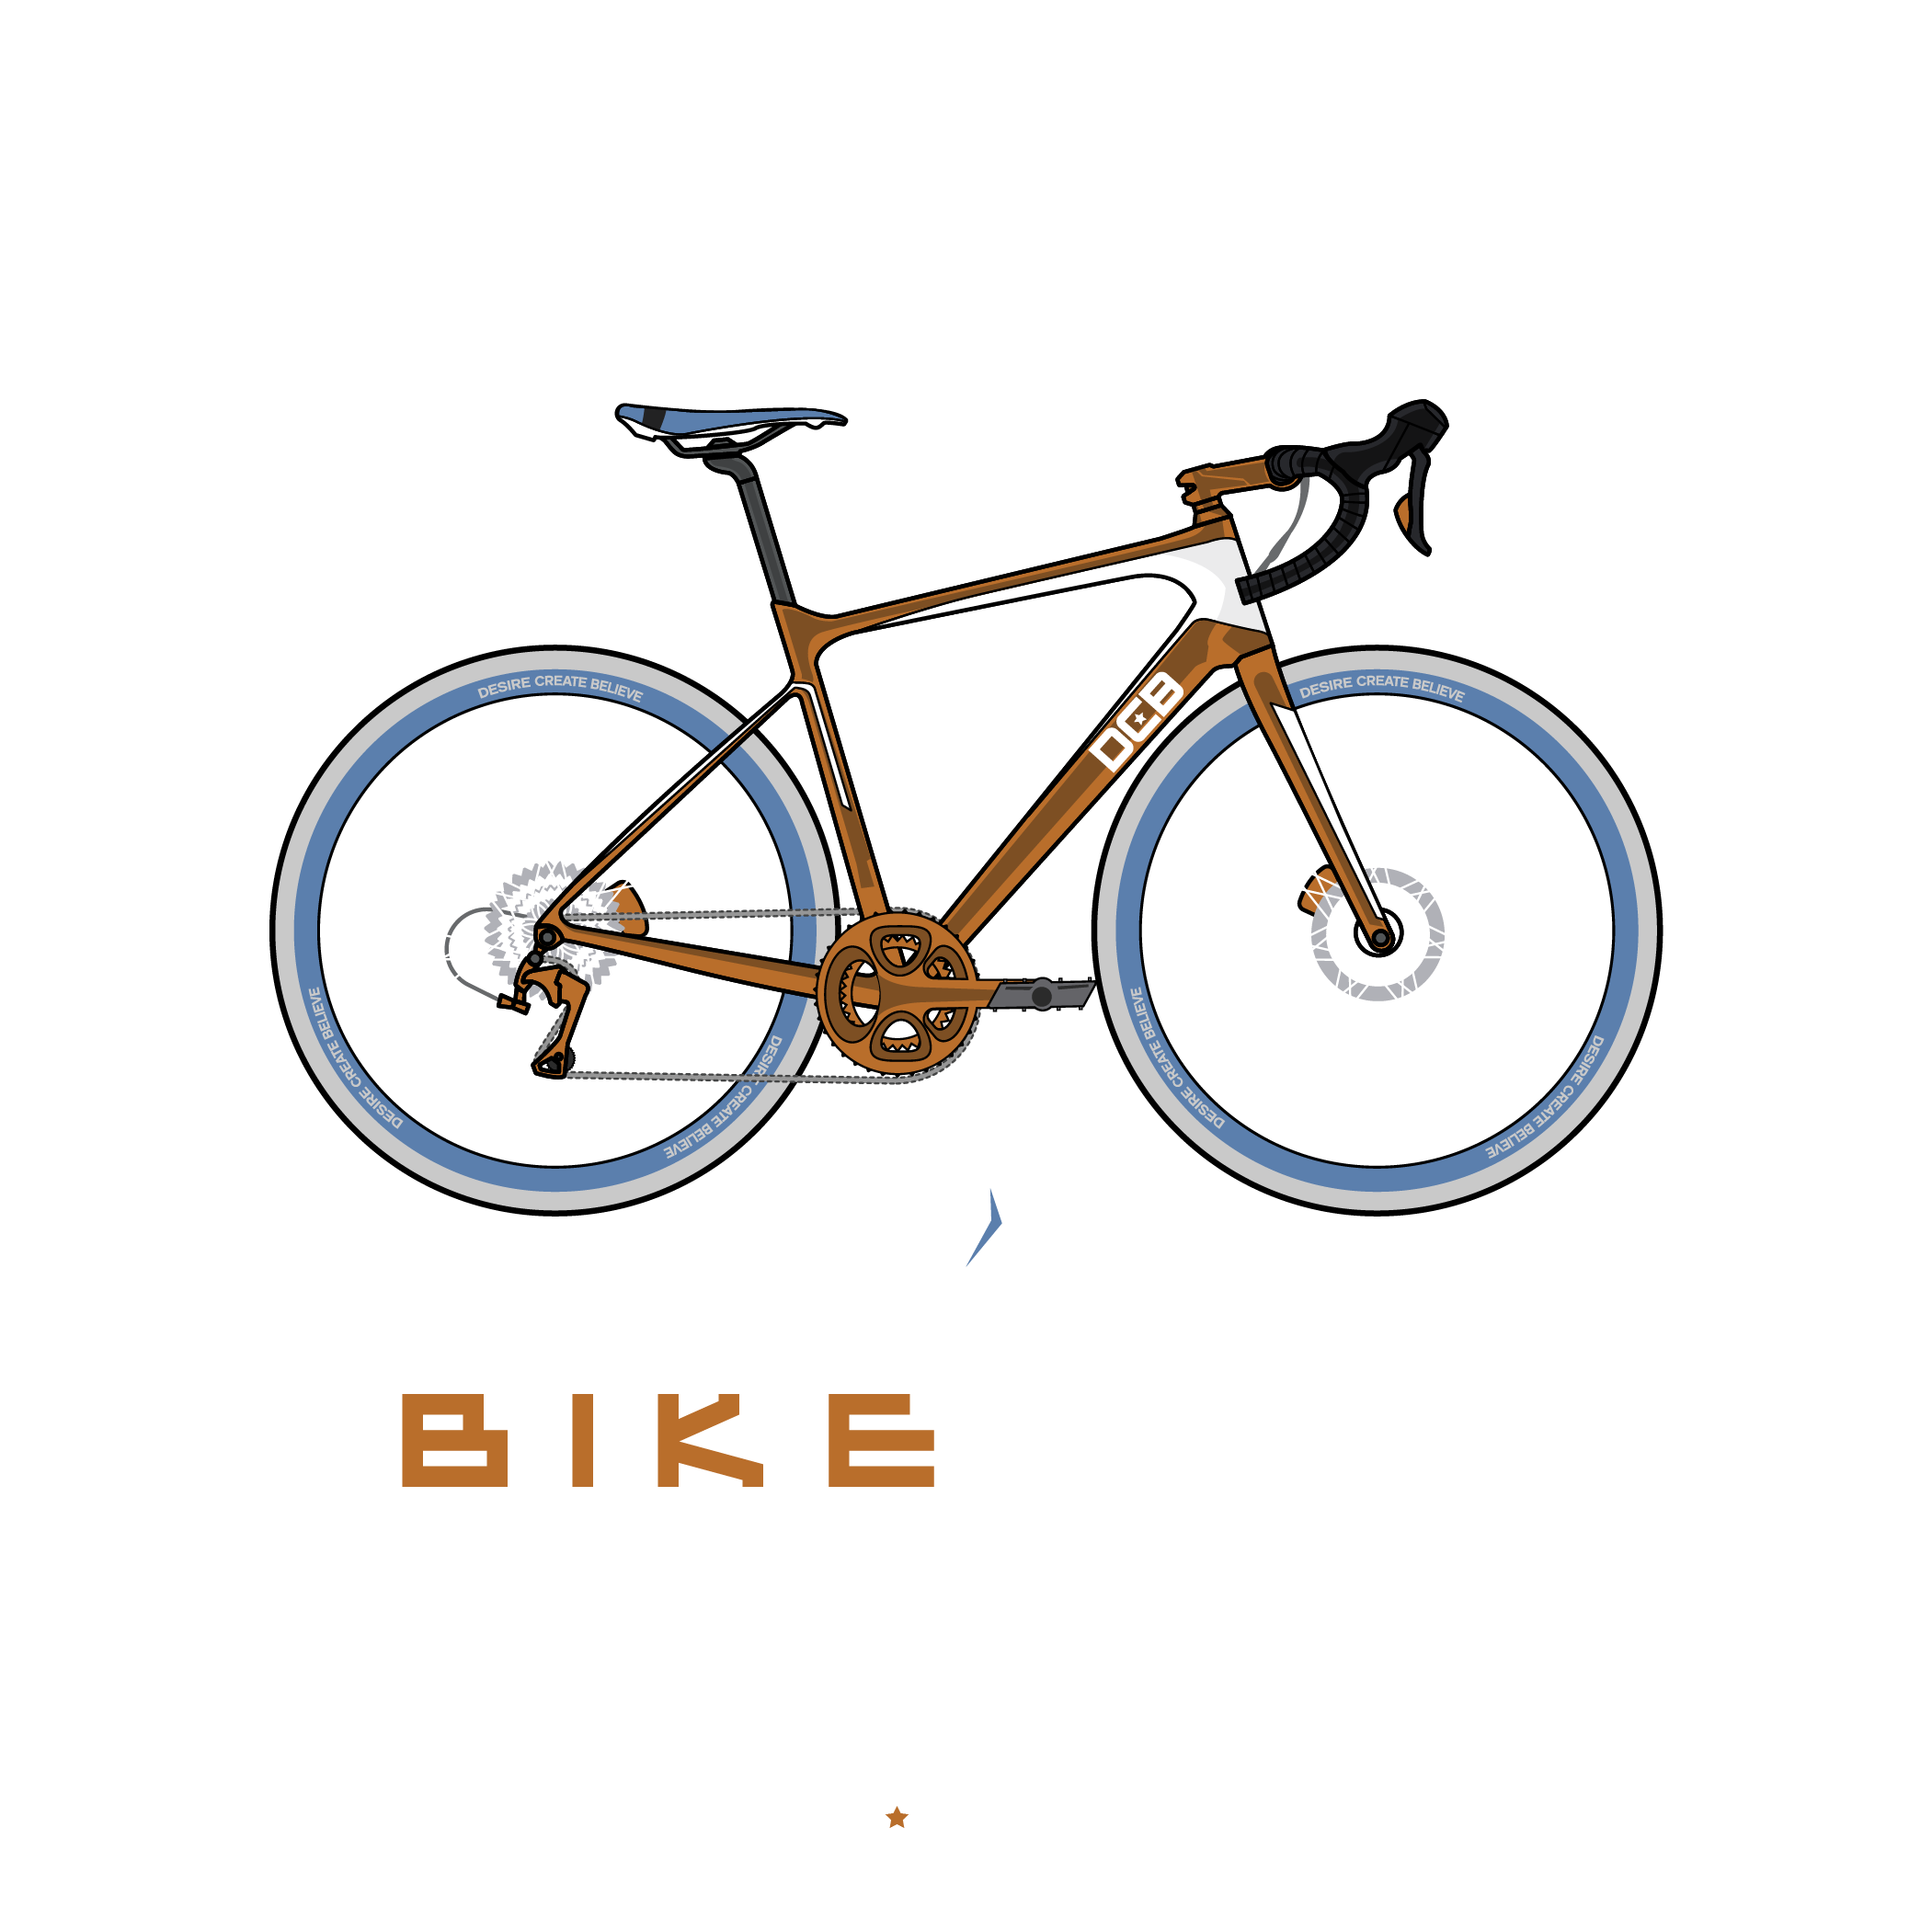 Bike Life Racer Legerity.png